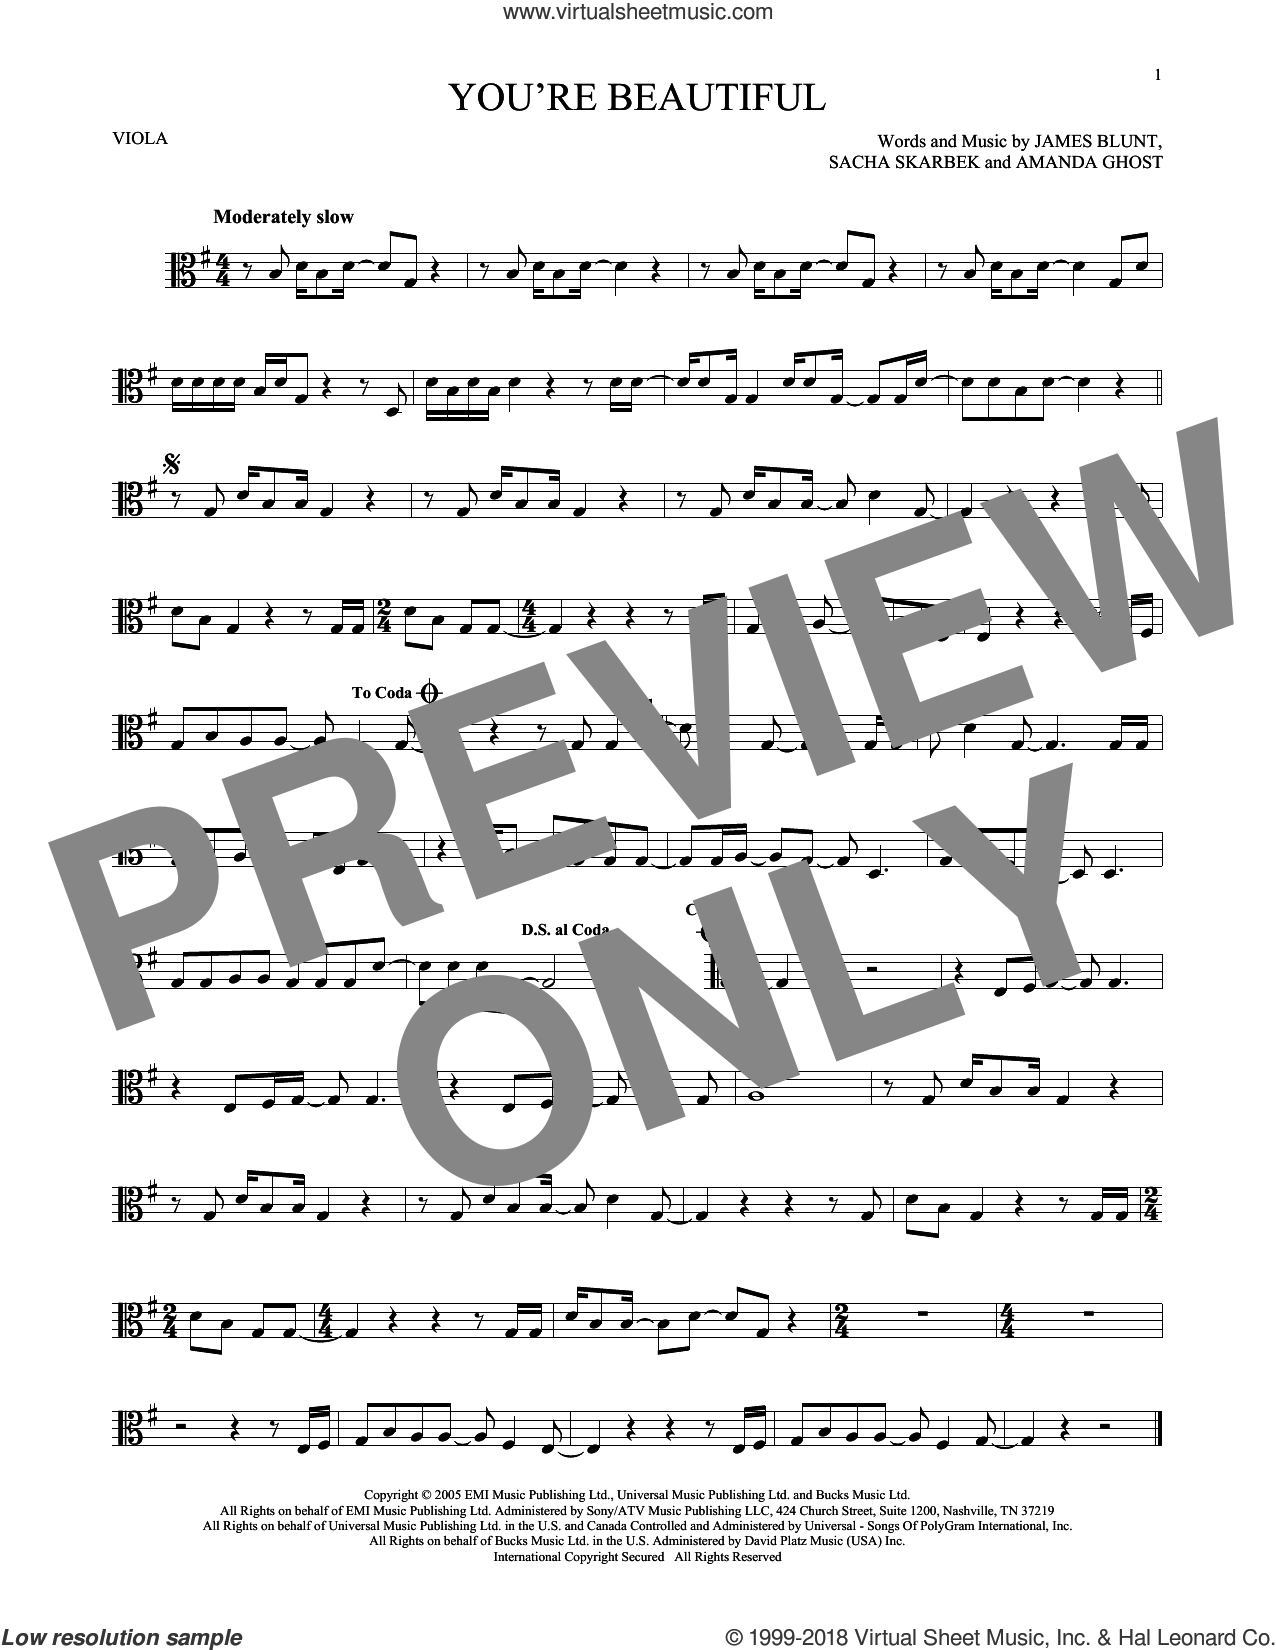 You're Beautiful sheet music for viola solo by Sacha Skarbek, Amanda Ghost and James Blunt. Score Image Preview.